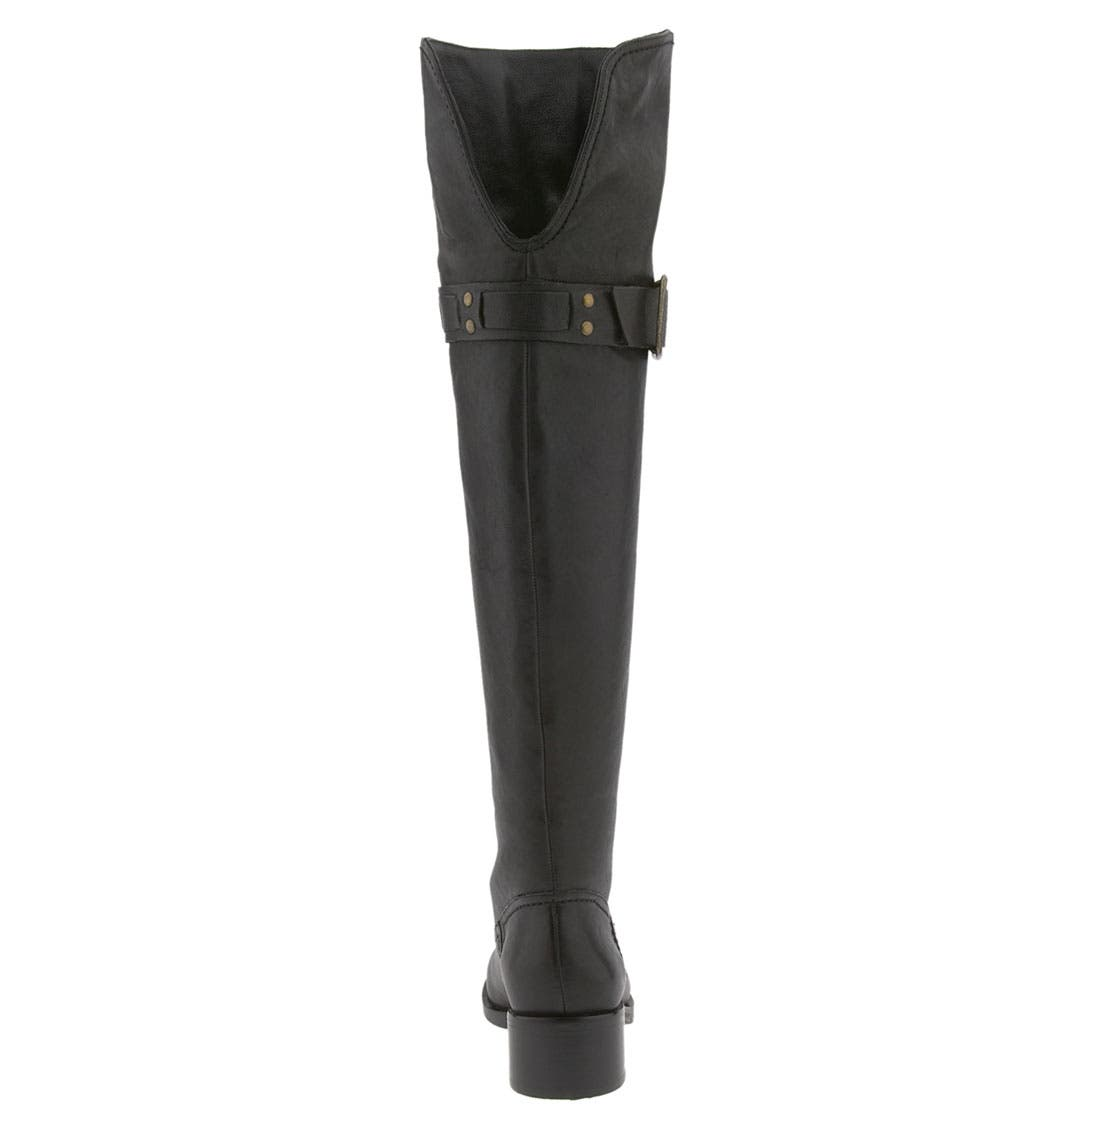 JESSICA SIMPSON, 'Clancey' Over the Knee Boot, Alternate thumbnail 2, color, 001